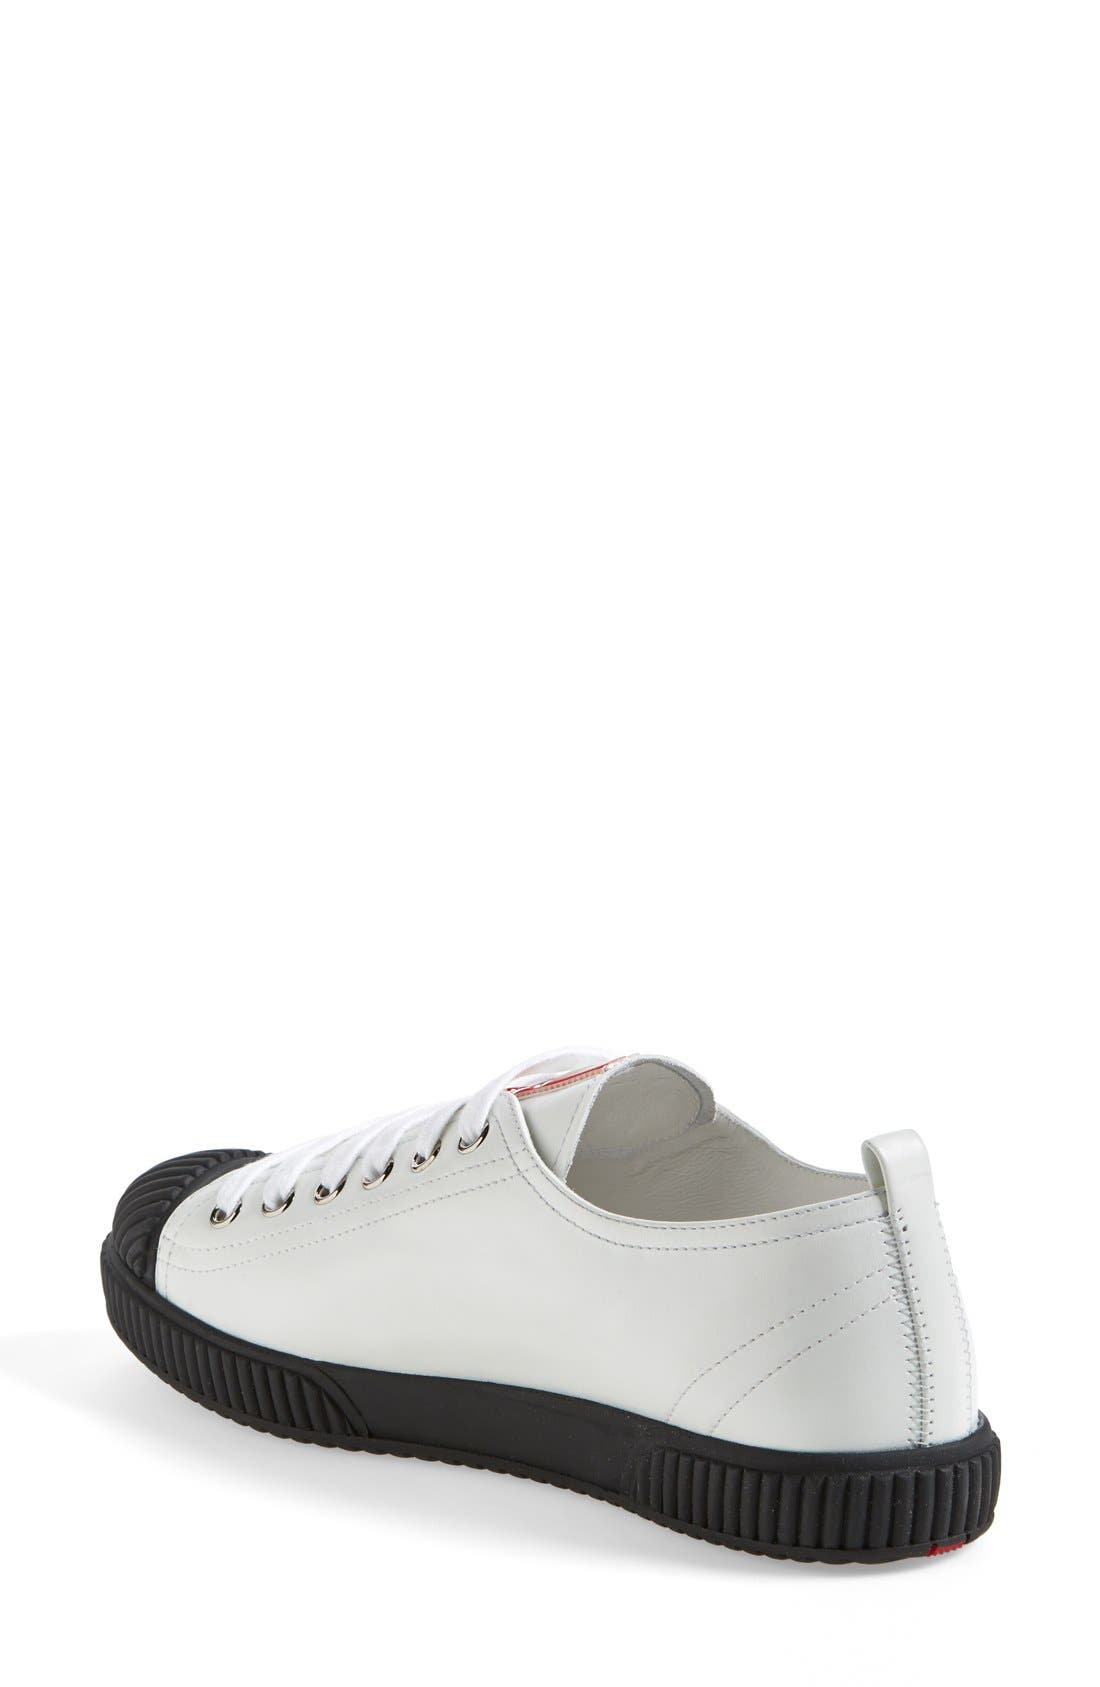 Alternate Image 2  - Prada Cap Toe Sneaker (Women)